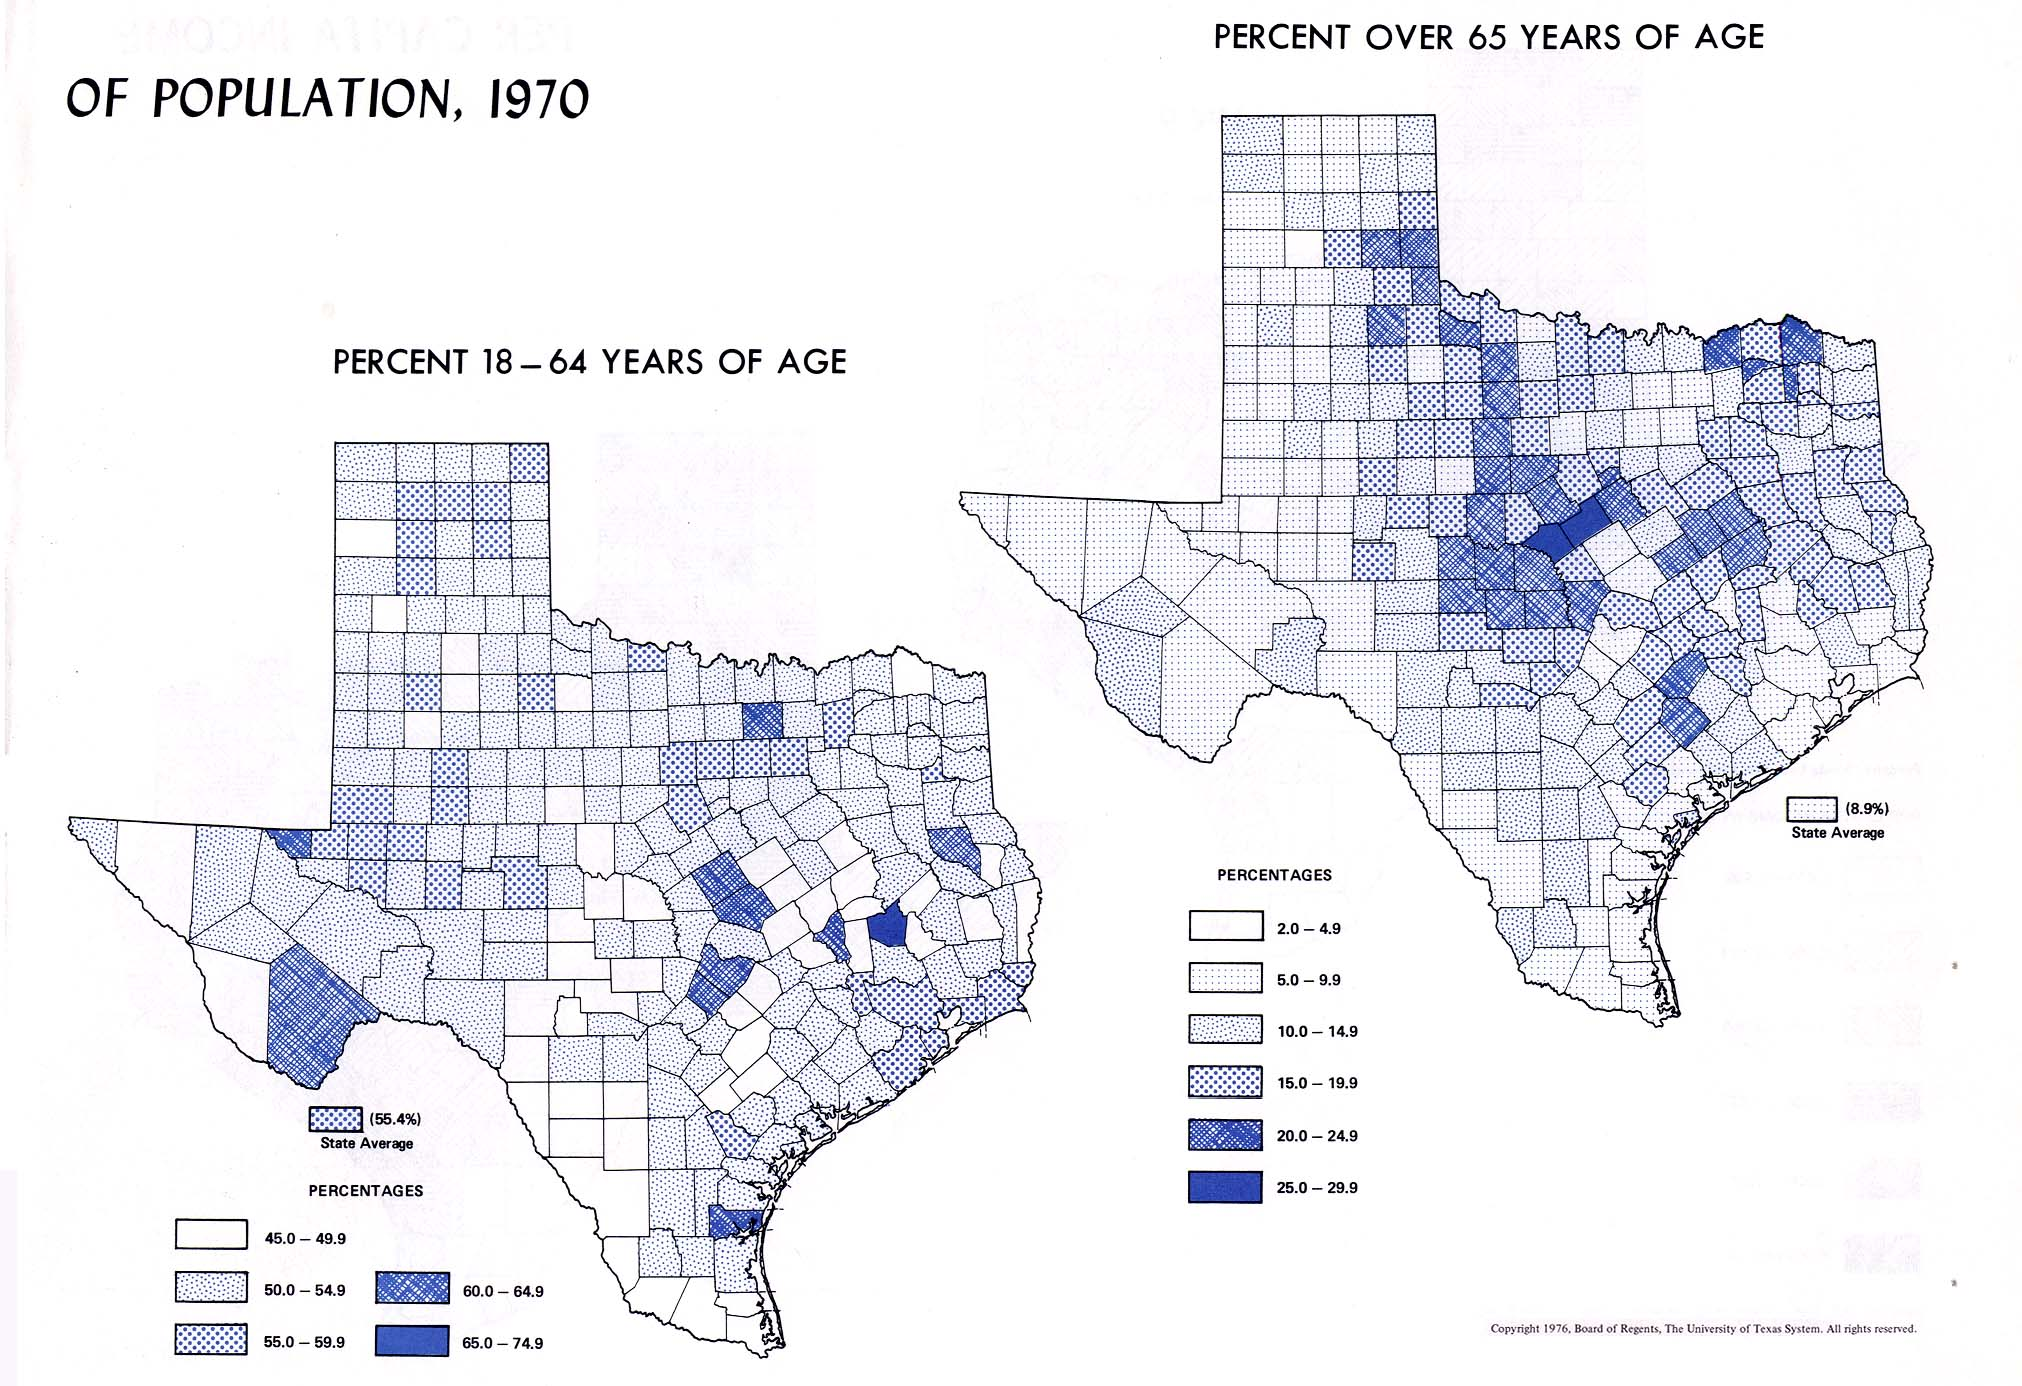 Atlas Of Texas PerryCastañeda Map Collection UT Library Online - County map of 50 percent of us population